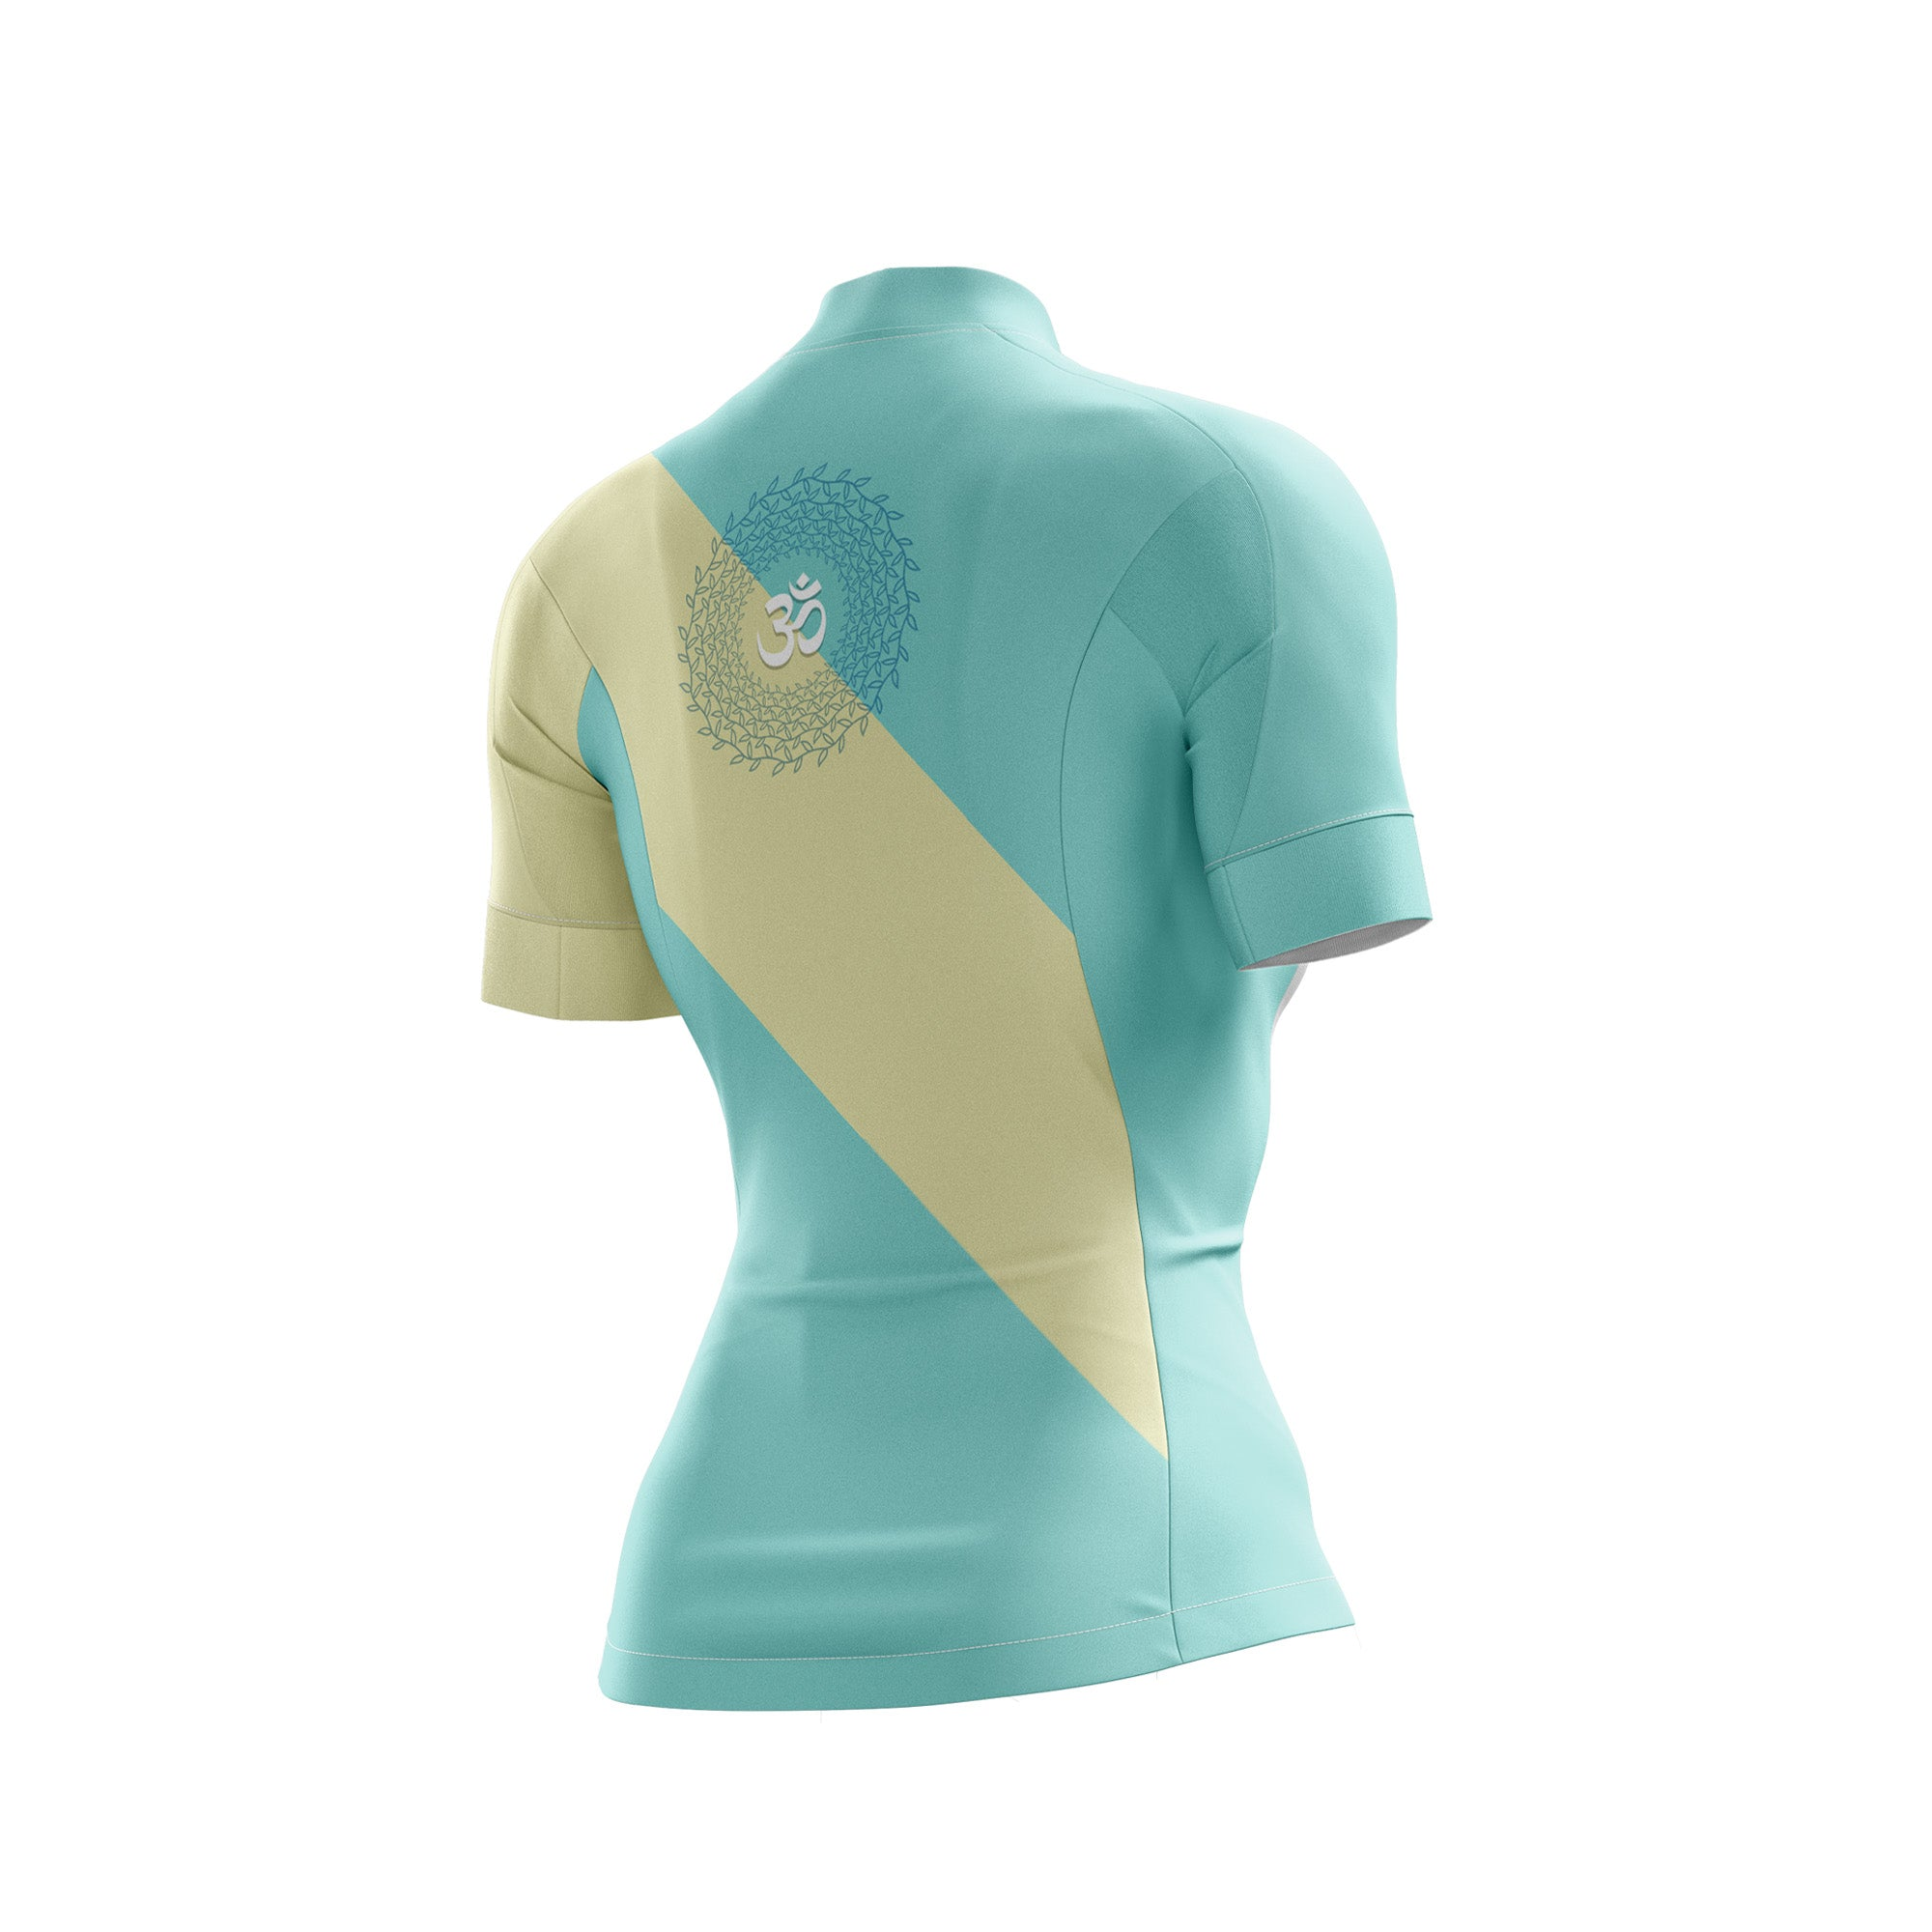 Om Female Cycling Jersey